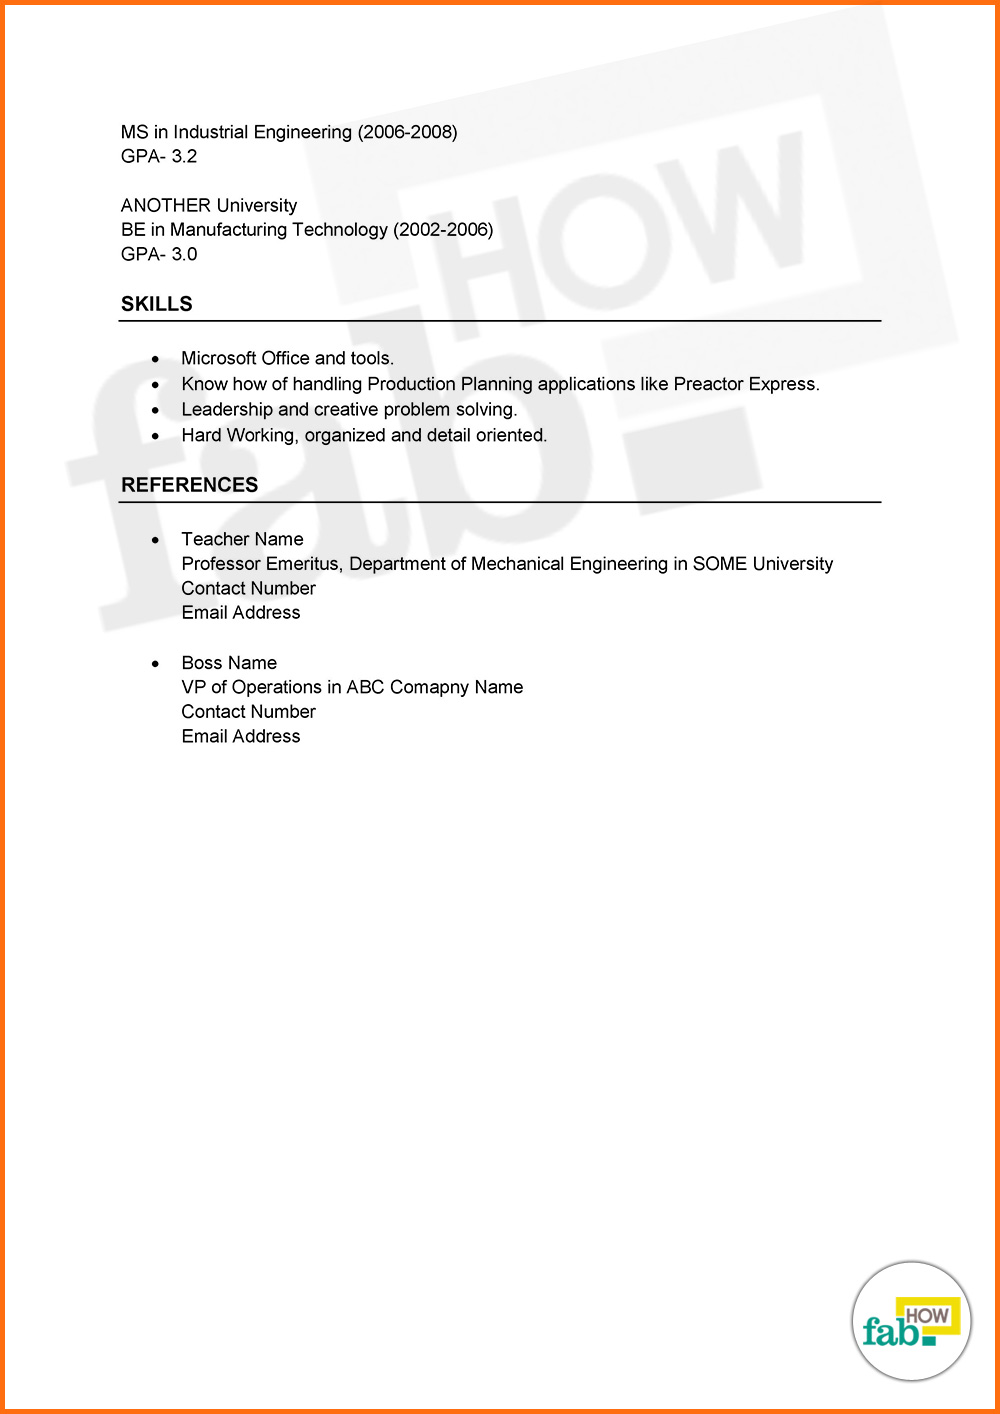 how to make an outstanding resume get samples chronological resume 1 chronological resume 2